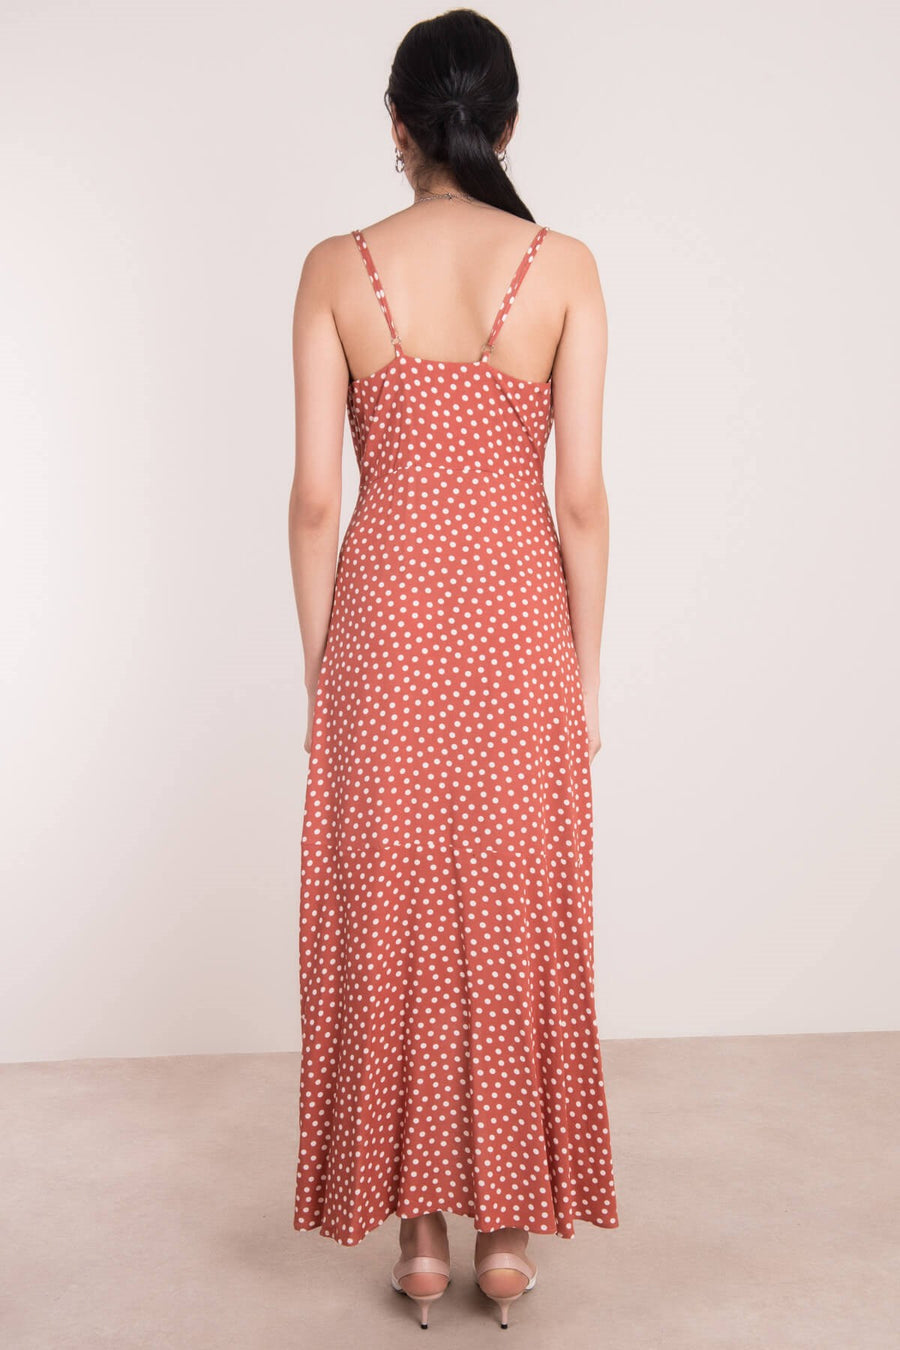 Strappy Polka Dot Dress - Terracotta